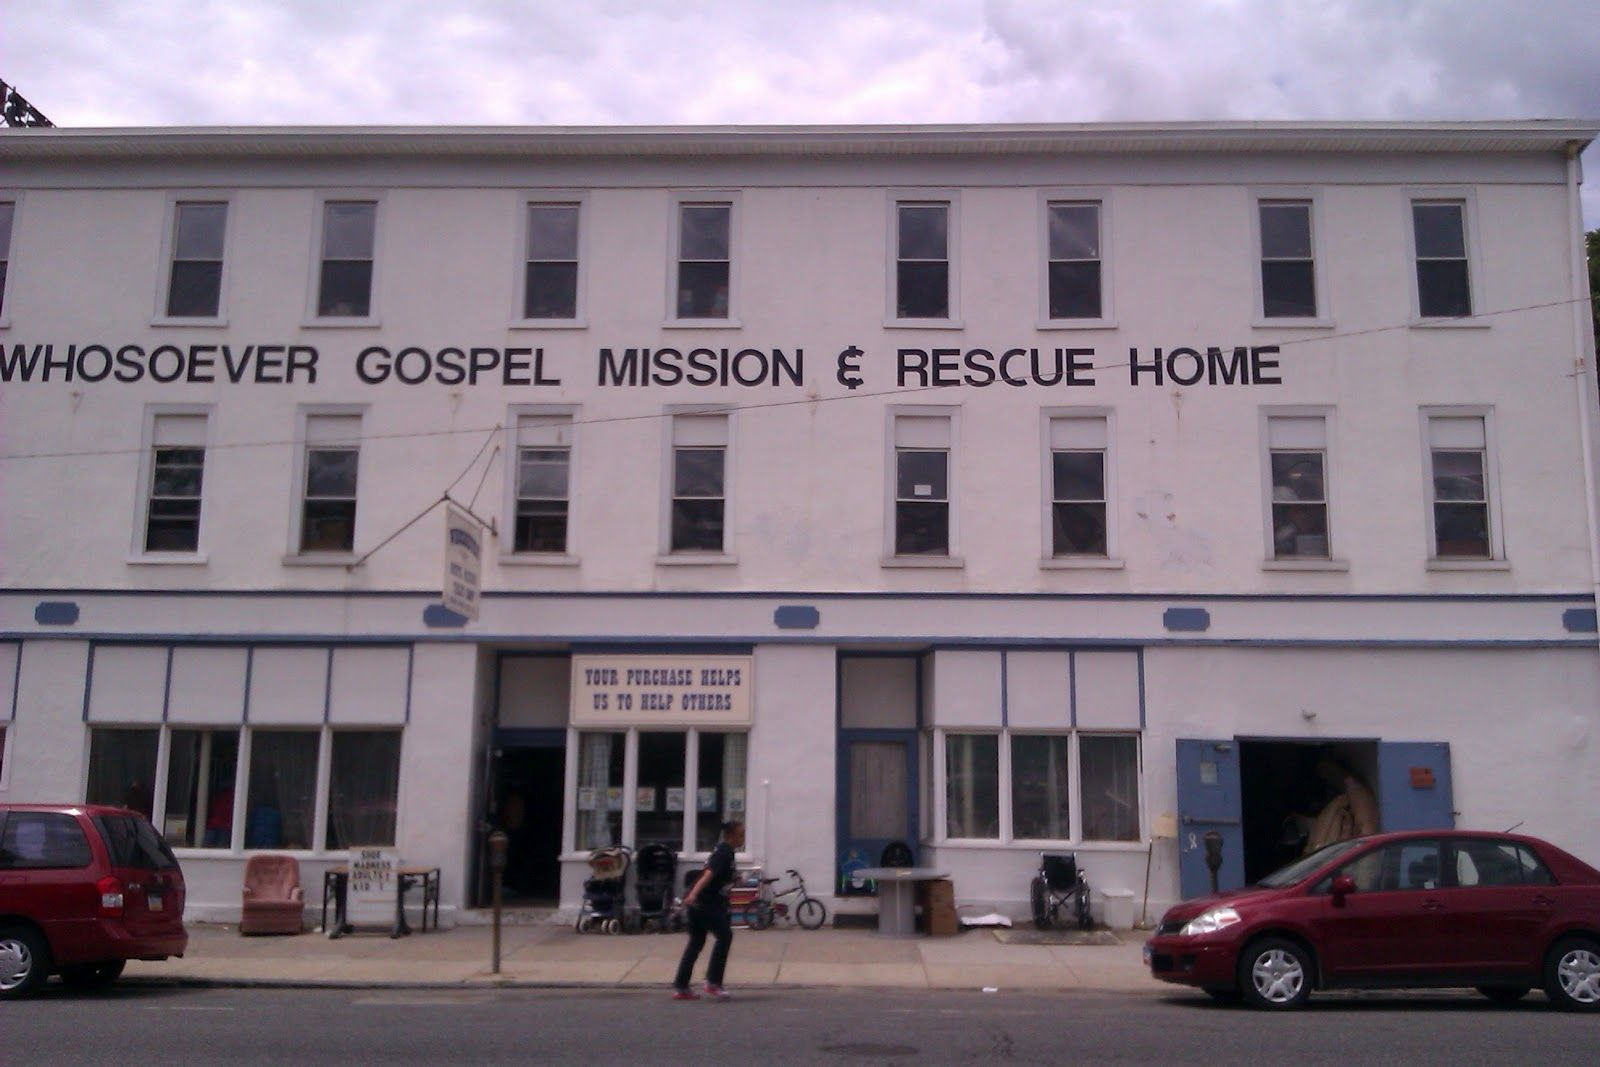 Whosoever Gospel Mission